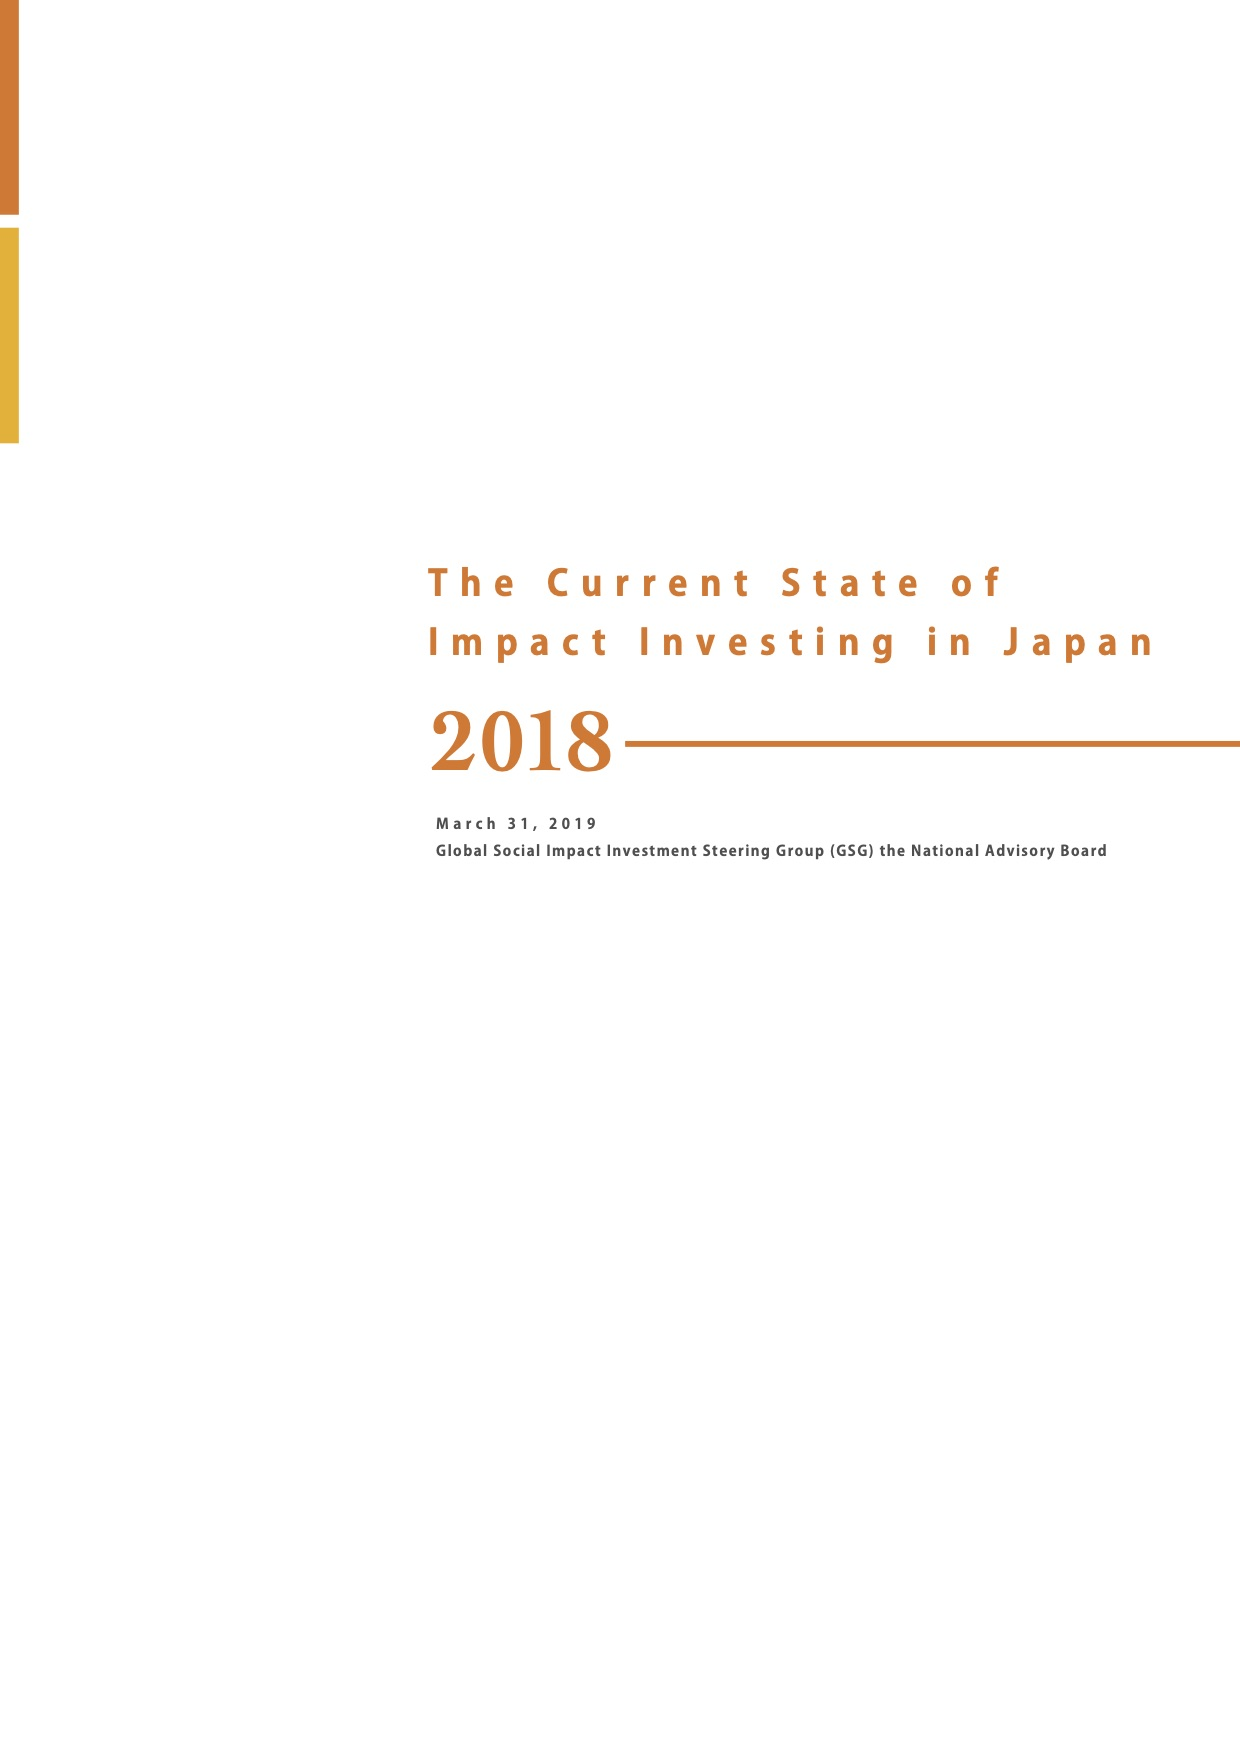 The Current State of Social Impact Investment in Japan 2018